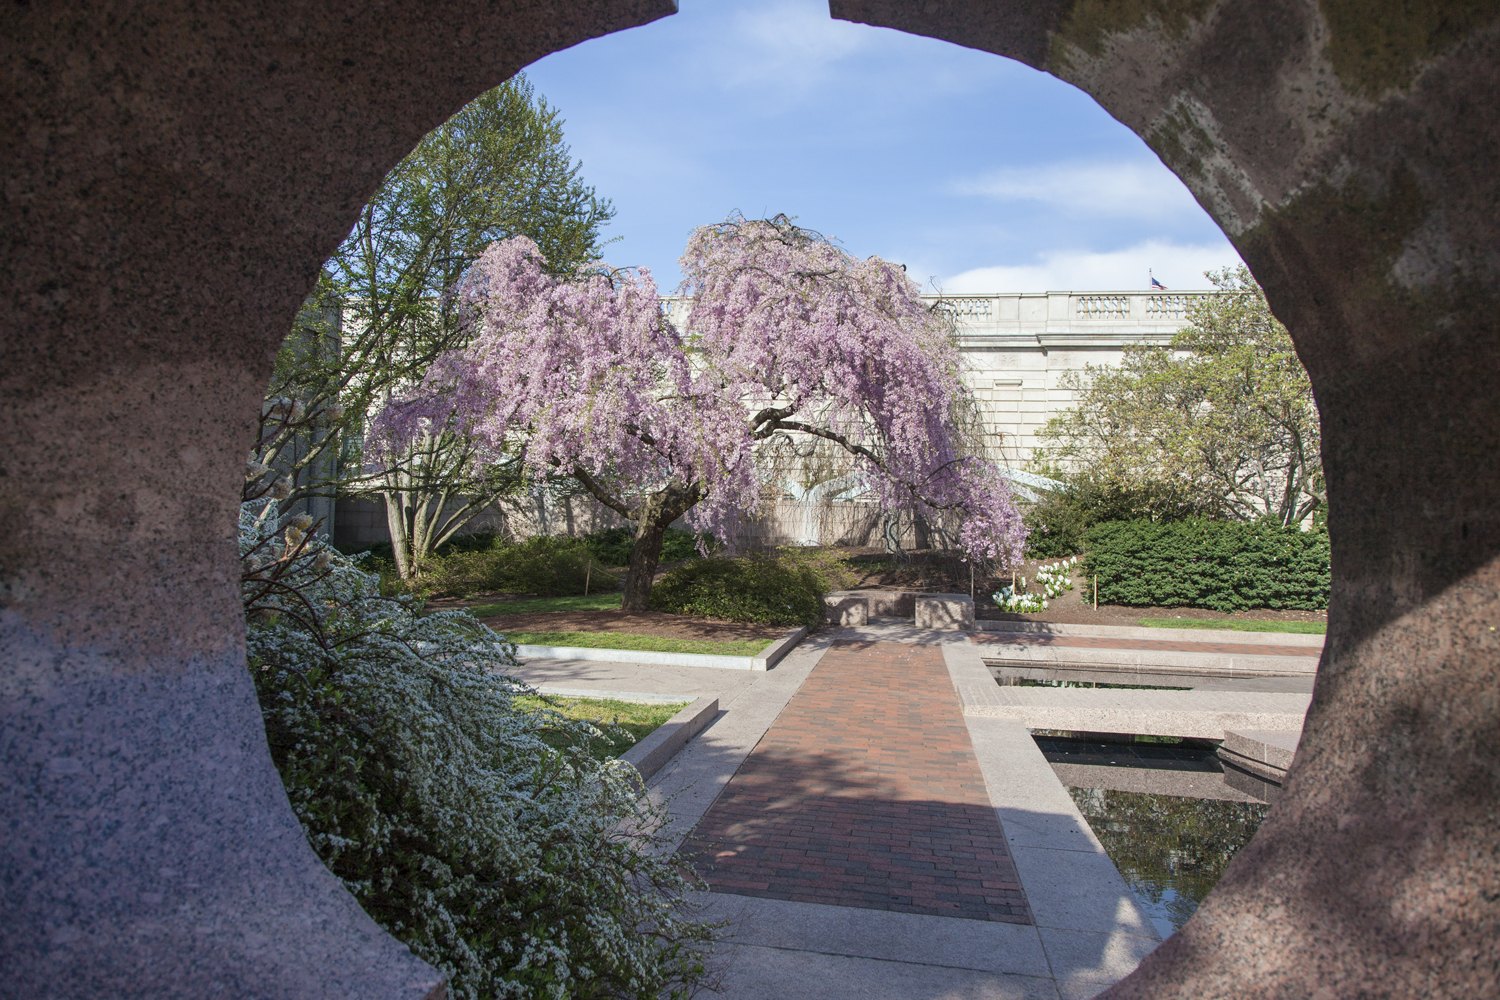 A weeping cherry tree in full bloom in the Sackler's Moongate garden.